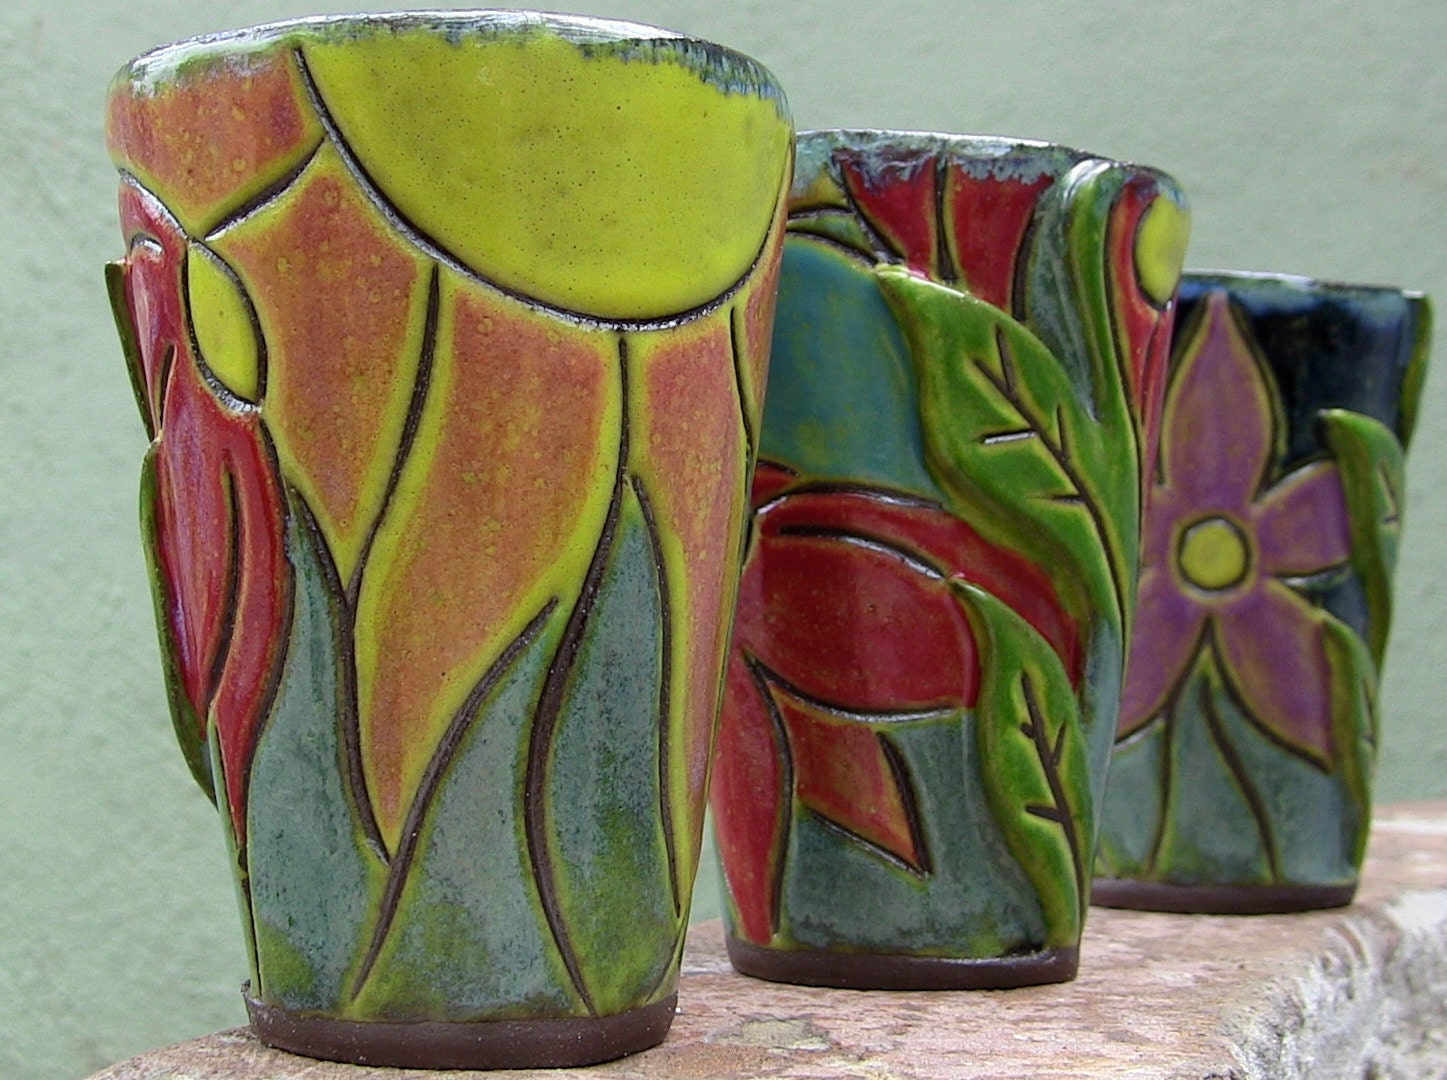 Ceramic Tumbler Cup - Small - Children's Pottery - Flower 'Mosaic' - Easter / Spring - SeedlingClayworks